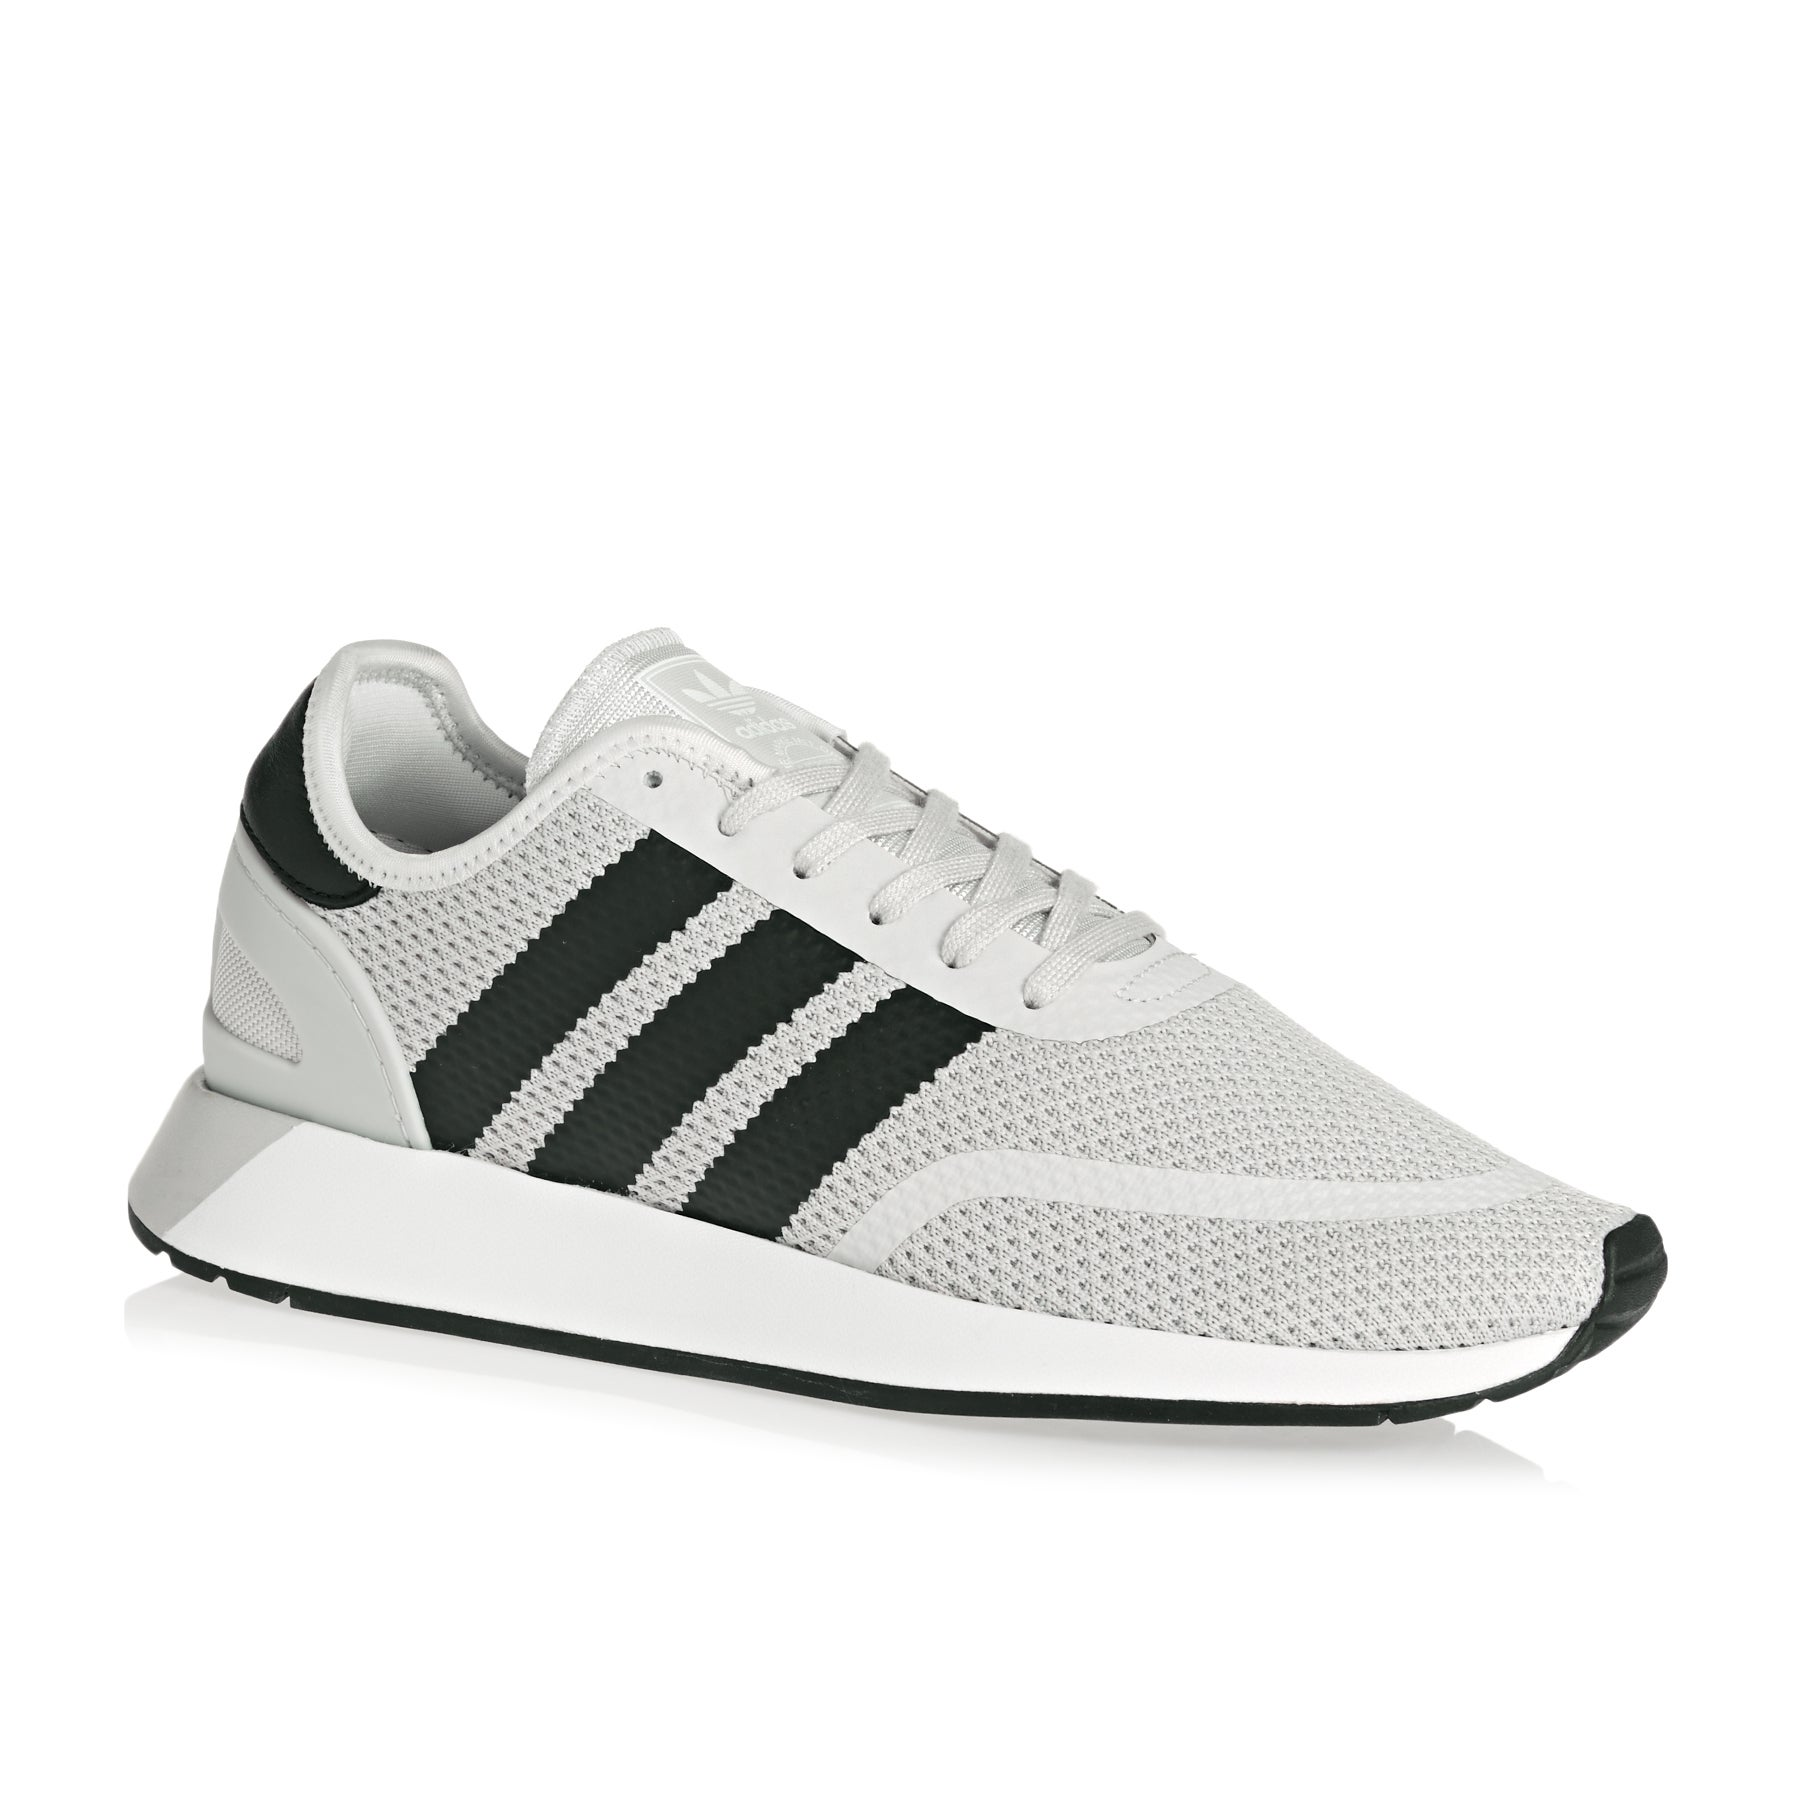 Adidas From Available Surfdome 5923 N Originals Shoes OqwrOCU